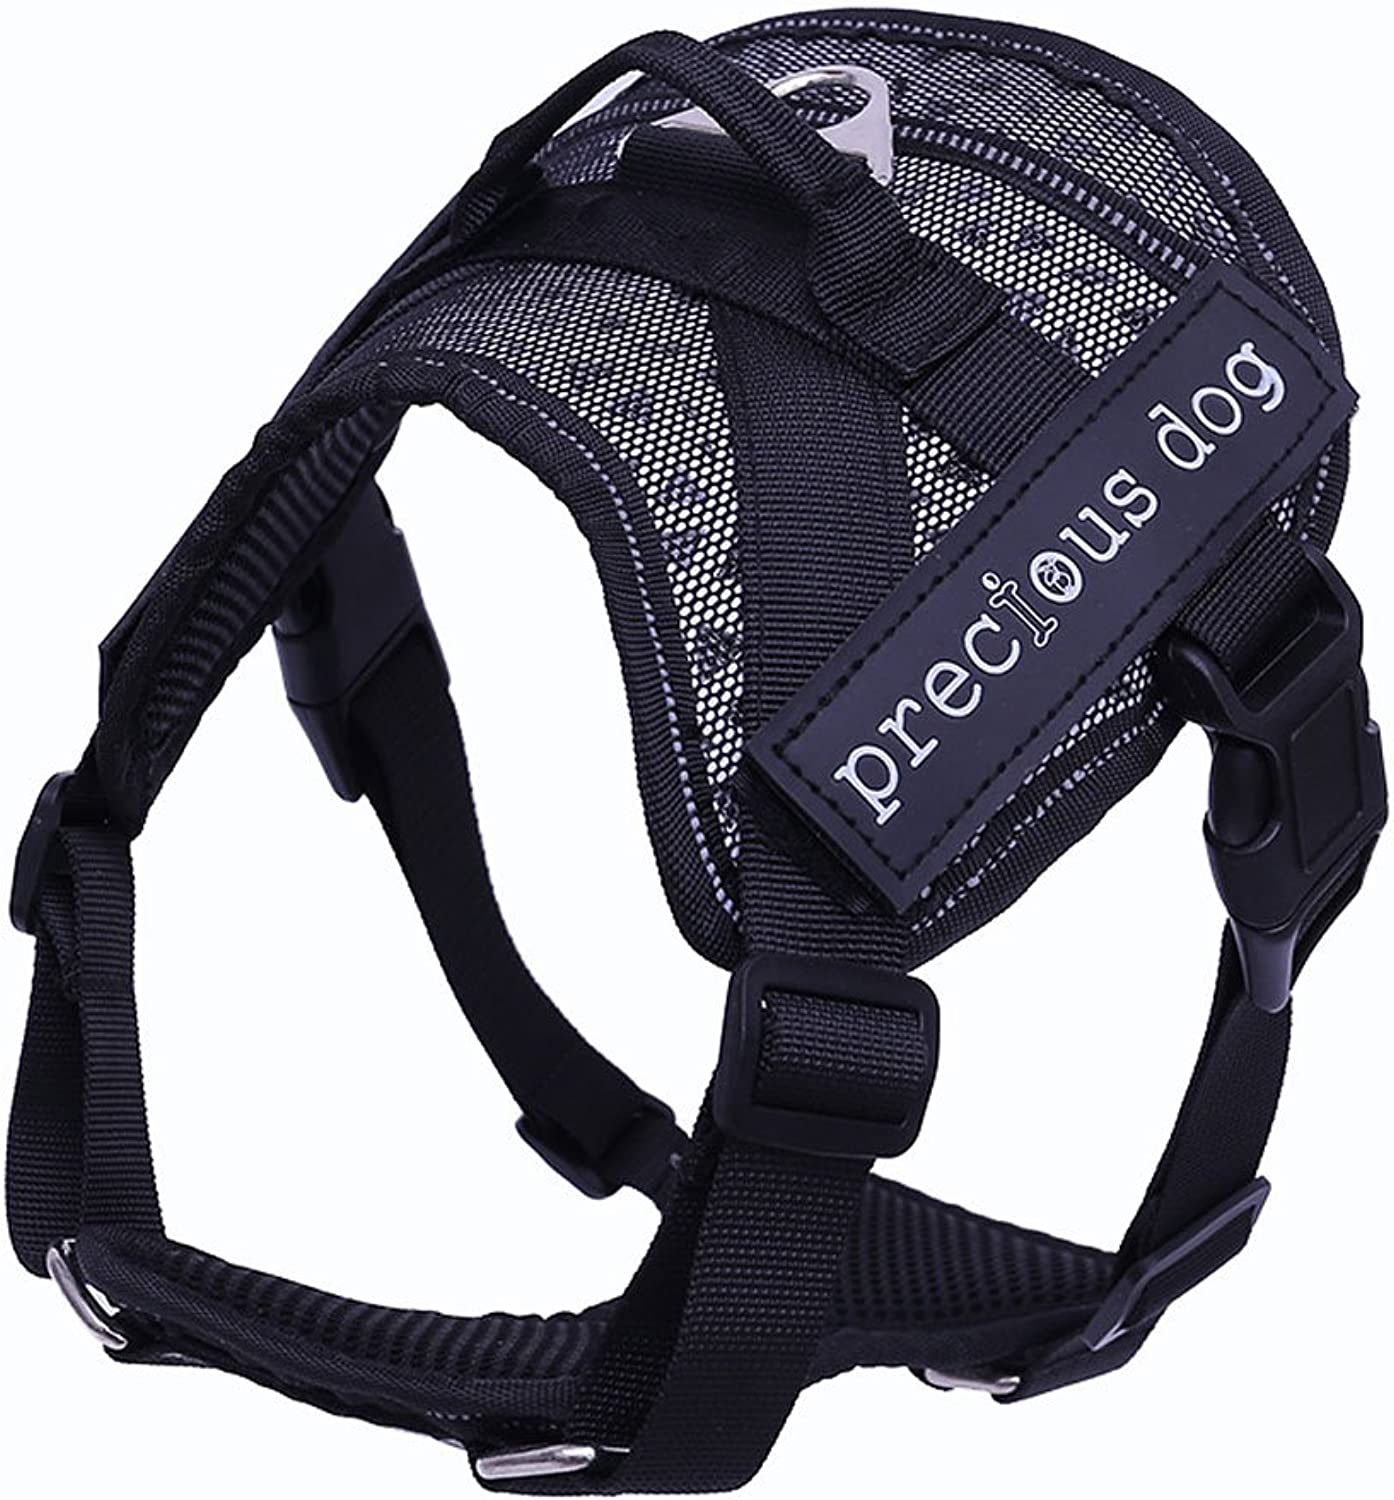 No Pull Dog Walking Harness,Soft Leash Dog Vest Harness, Adjustable, Easy On and Easy Off for Walking and Training, Grey S